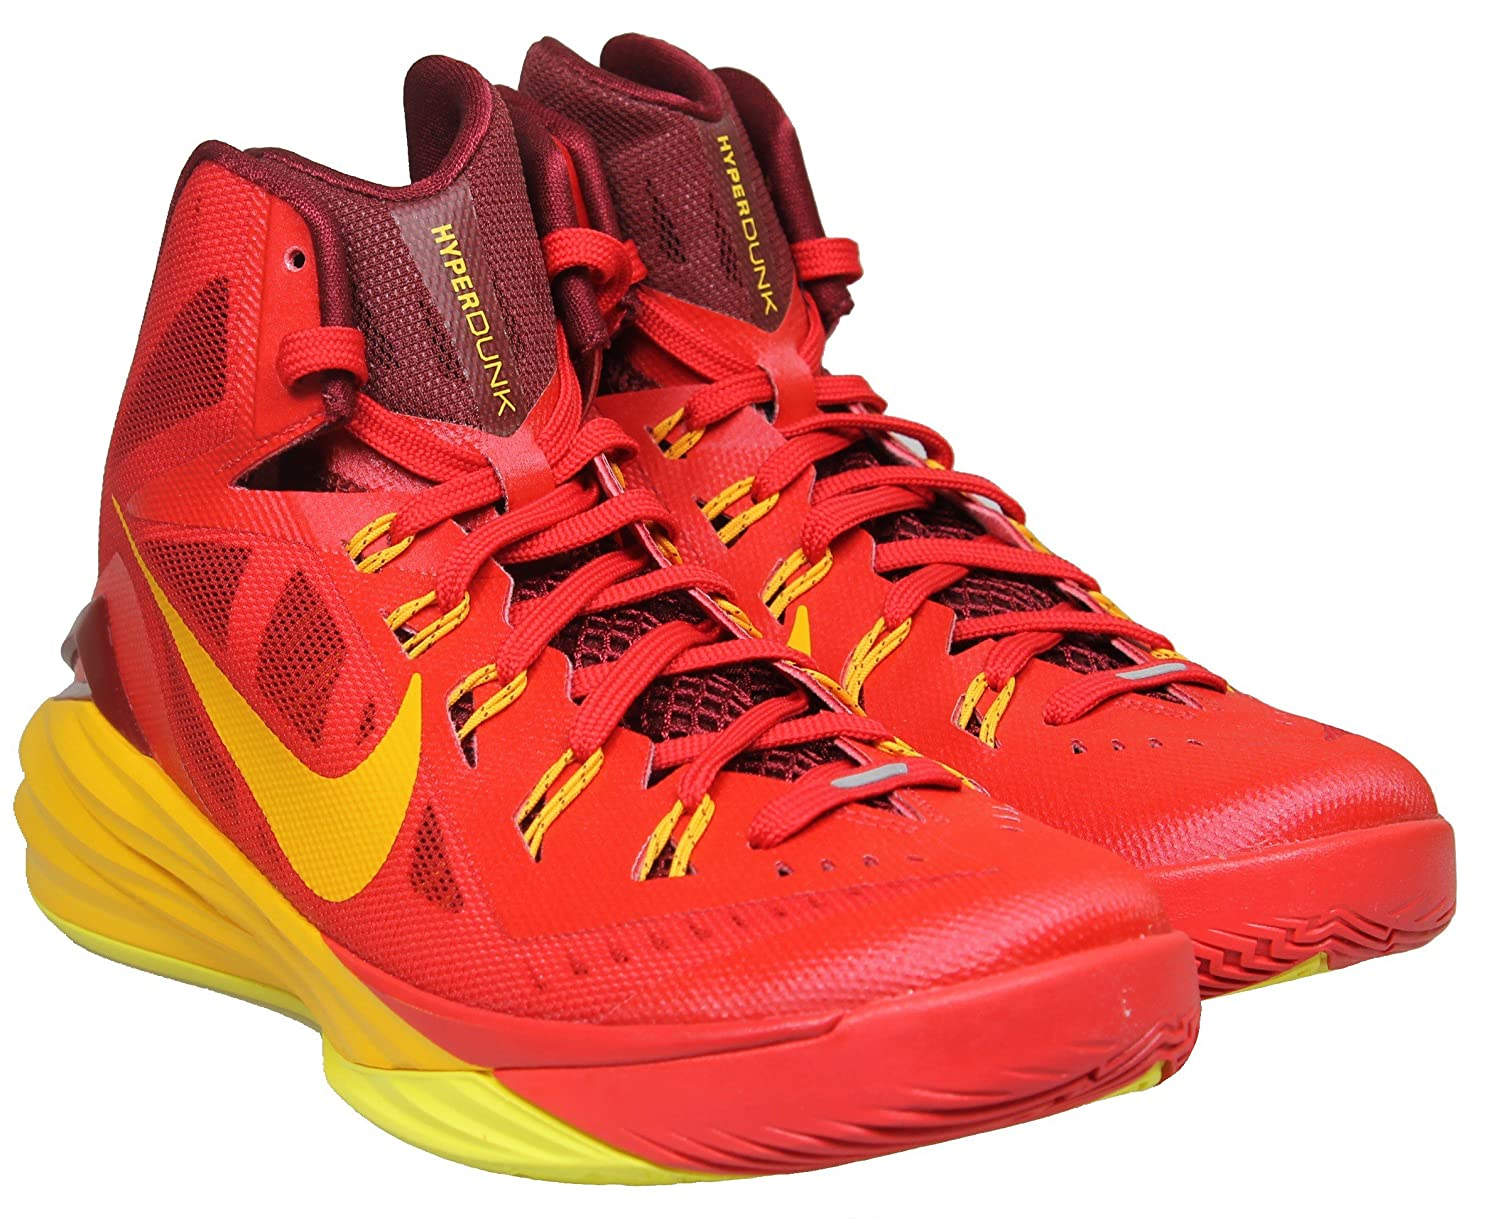 Exactly Fit Nike Hyperdunk 2014 Low Black Yellow Red